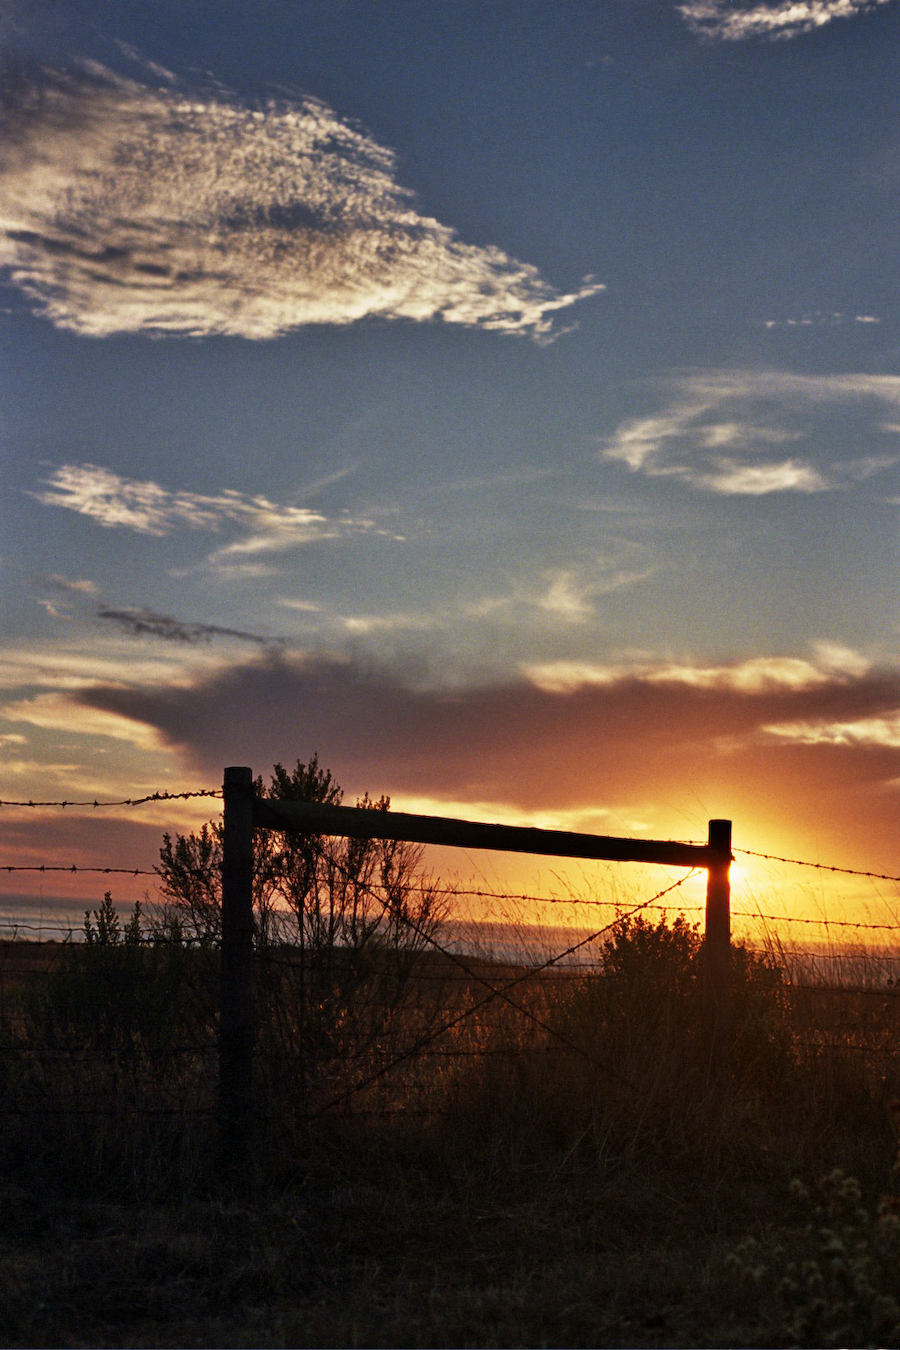 Sunset with a fence in Cambria, CA